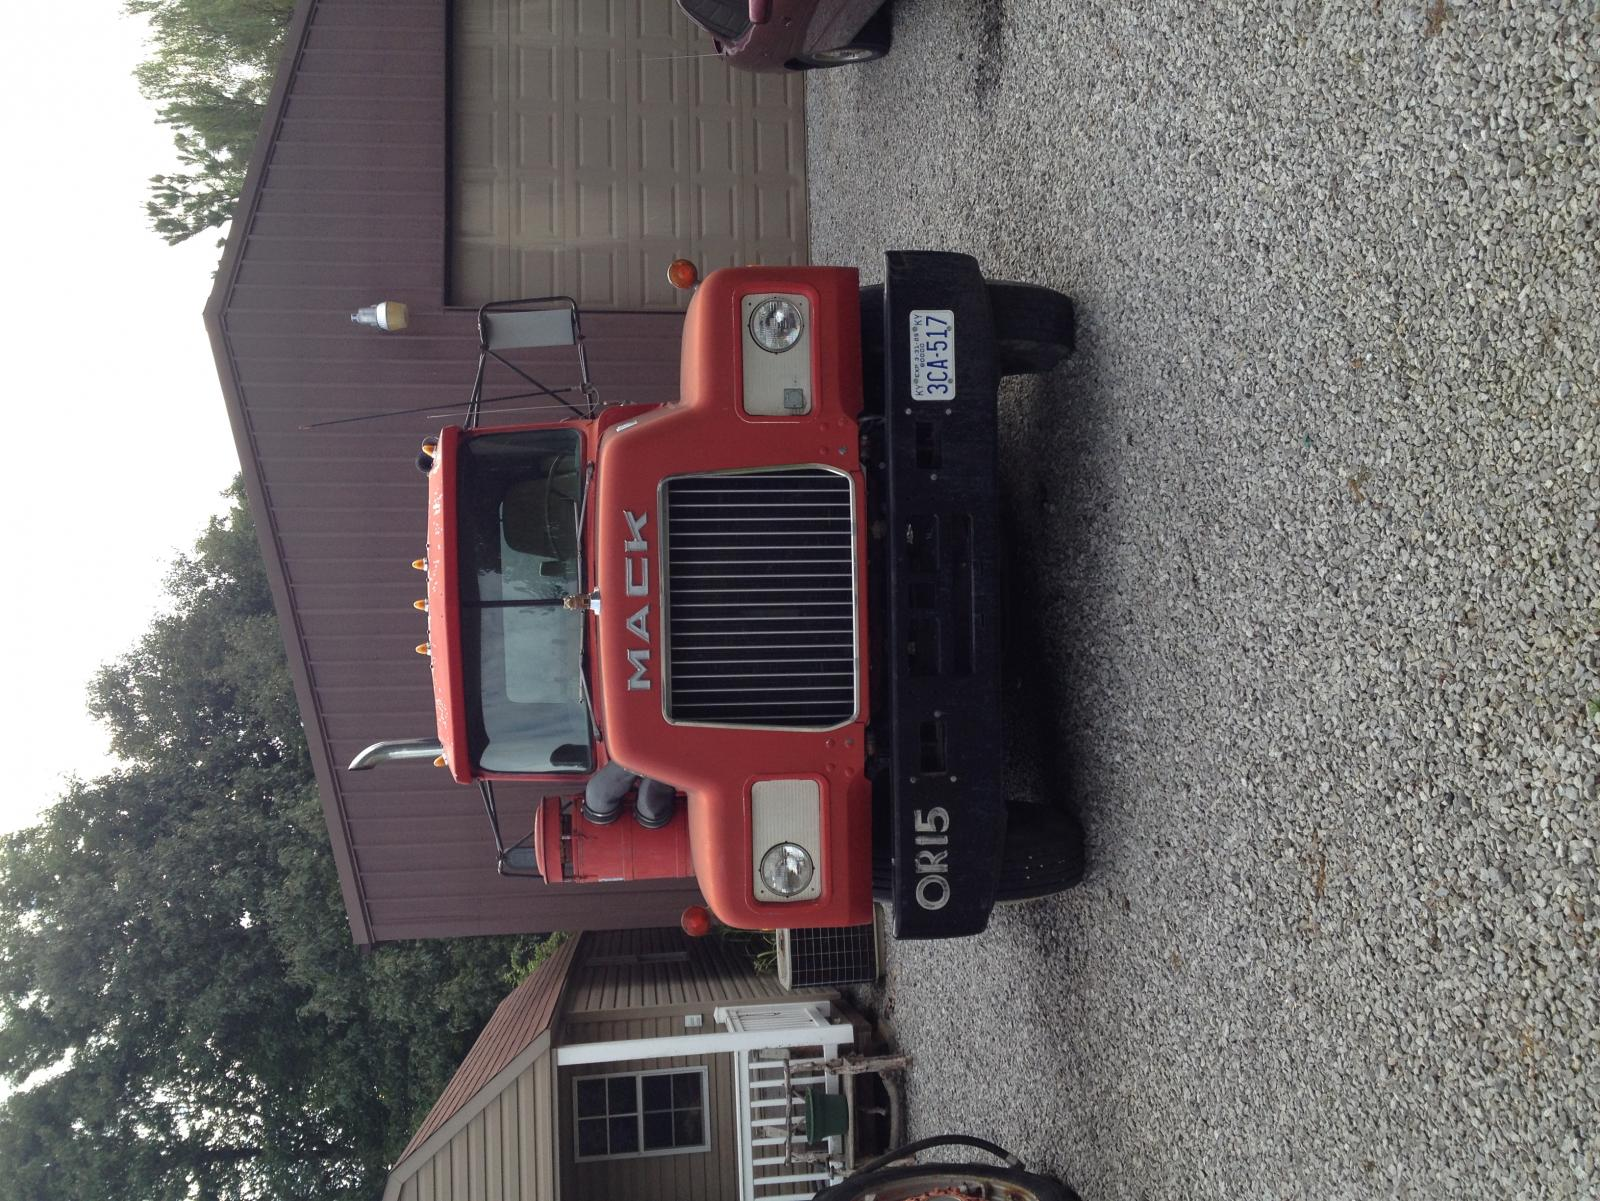 Mack R Model Lowboy Tractor 126 758 Miles